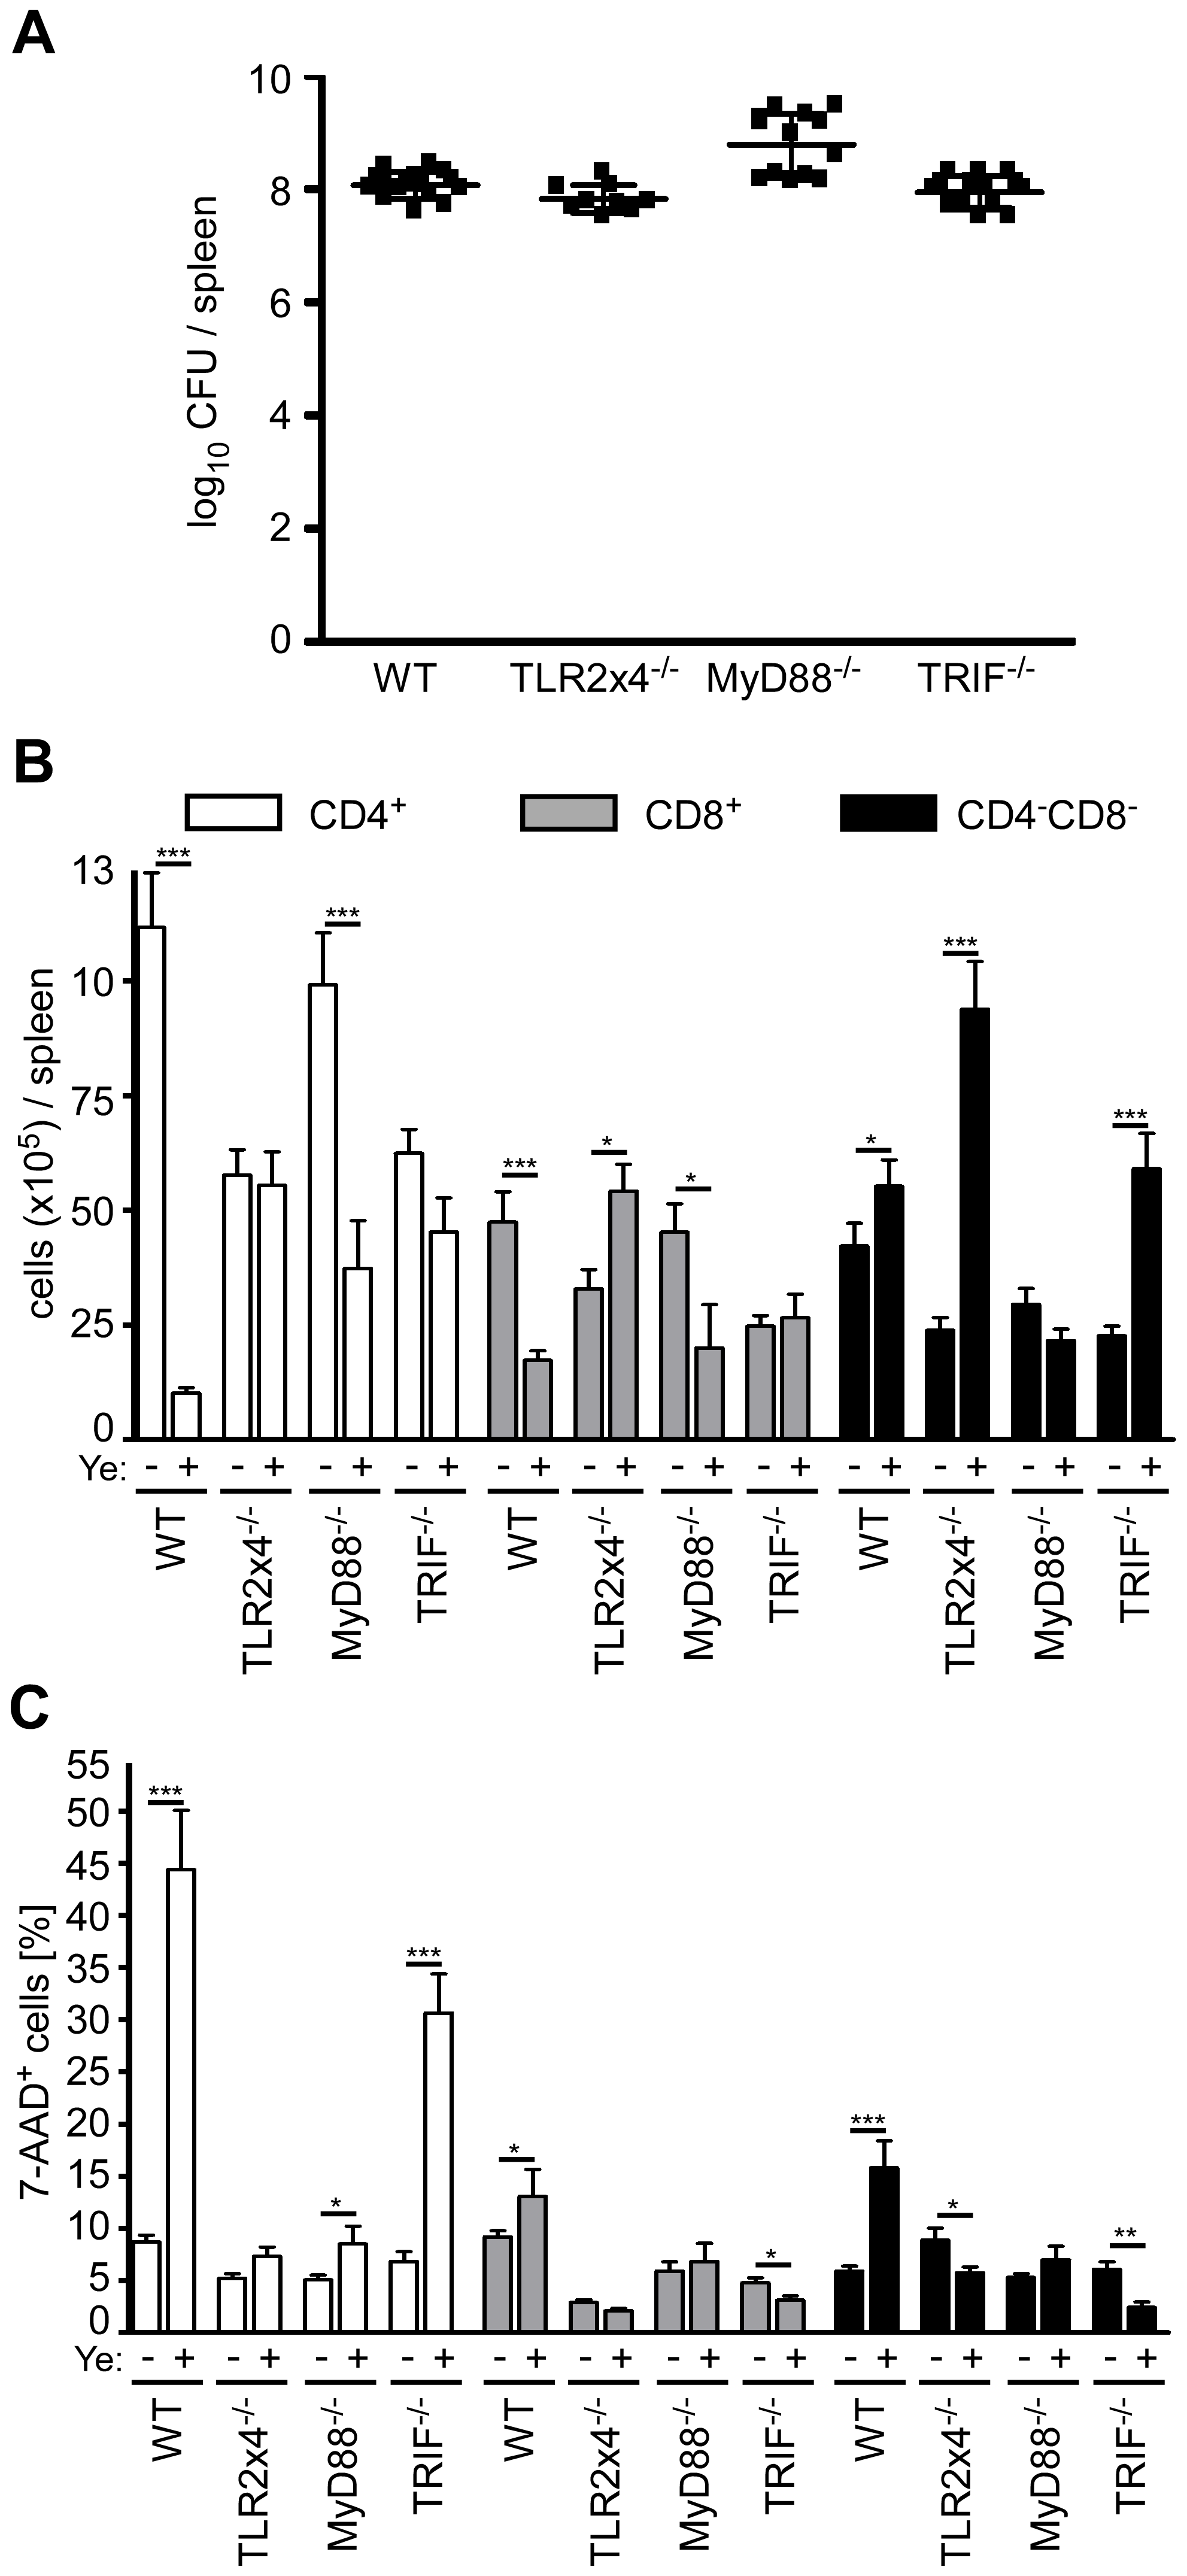 Analysis of DC subpopulations in TLR2<sup>−/−</sup>x4<sup>−/−</sup>, MyD88<sup>−/−</sup>, and TRIF<sup>−/−</sup> mice infected with Ye.